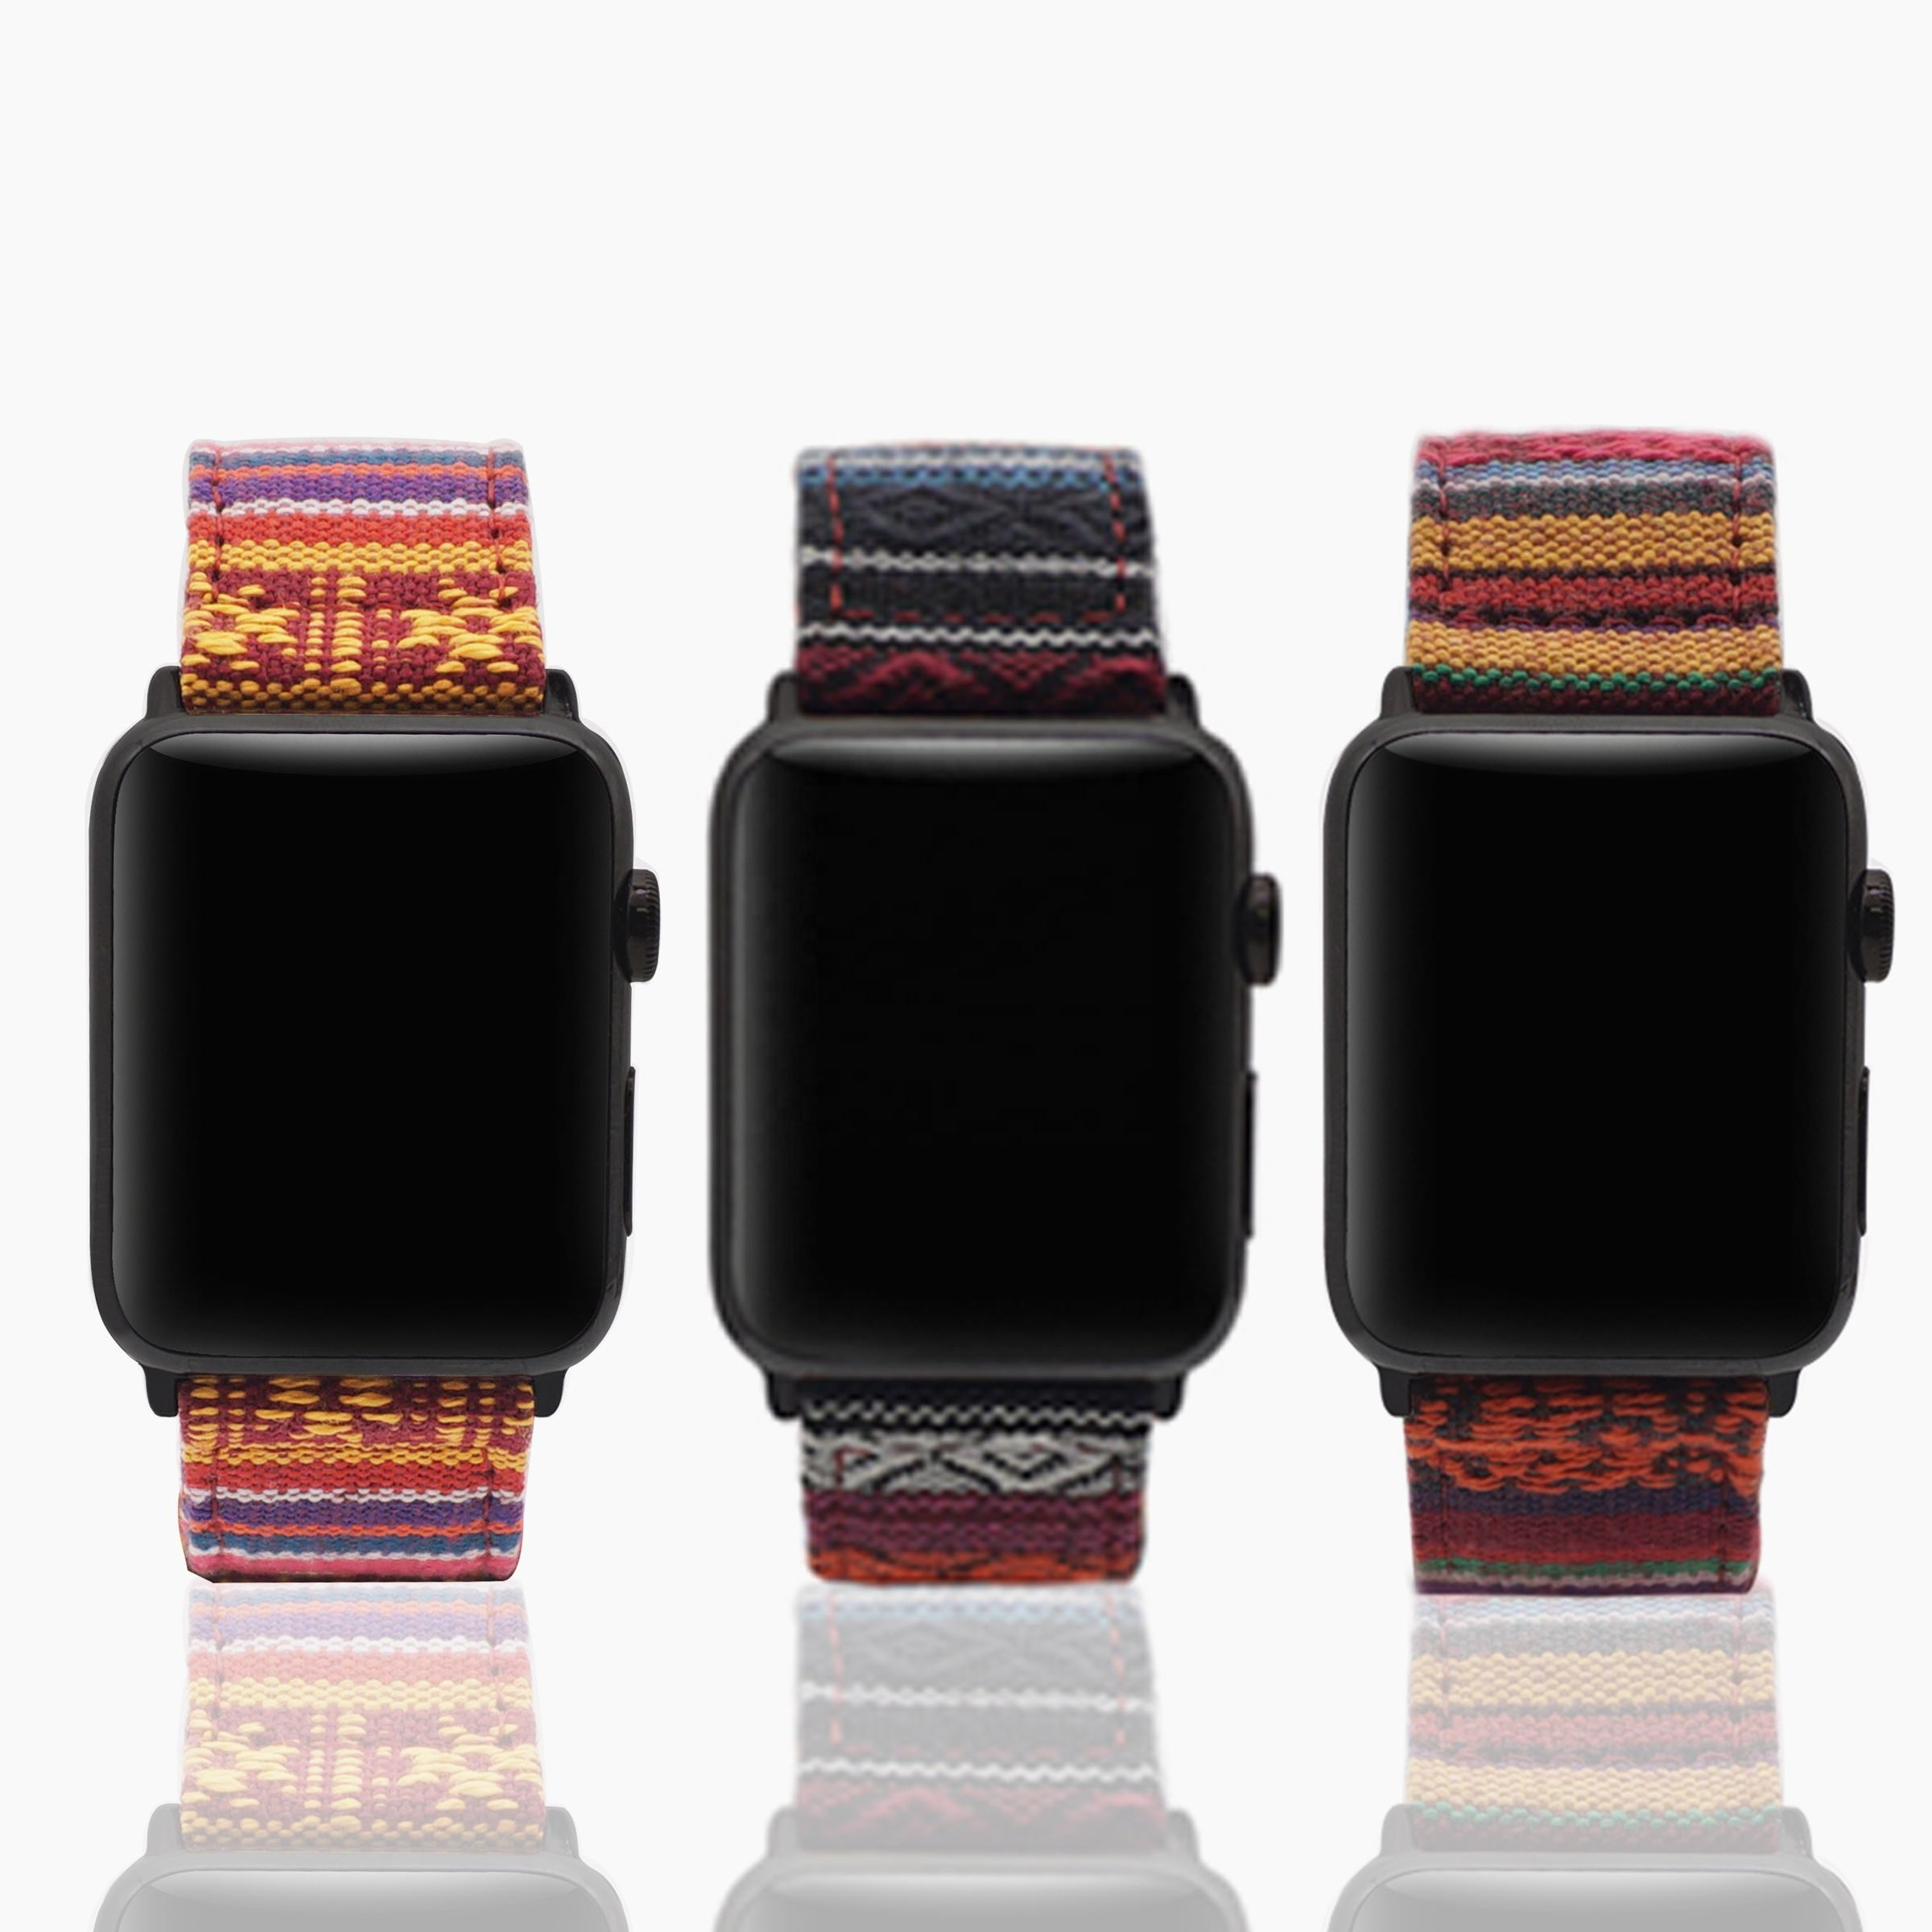 JUELNOG Donne Unisex Tessuto Cinturino in Tessuto di Nylon Watch Band per Apple Watch Band